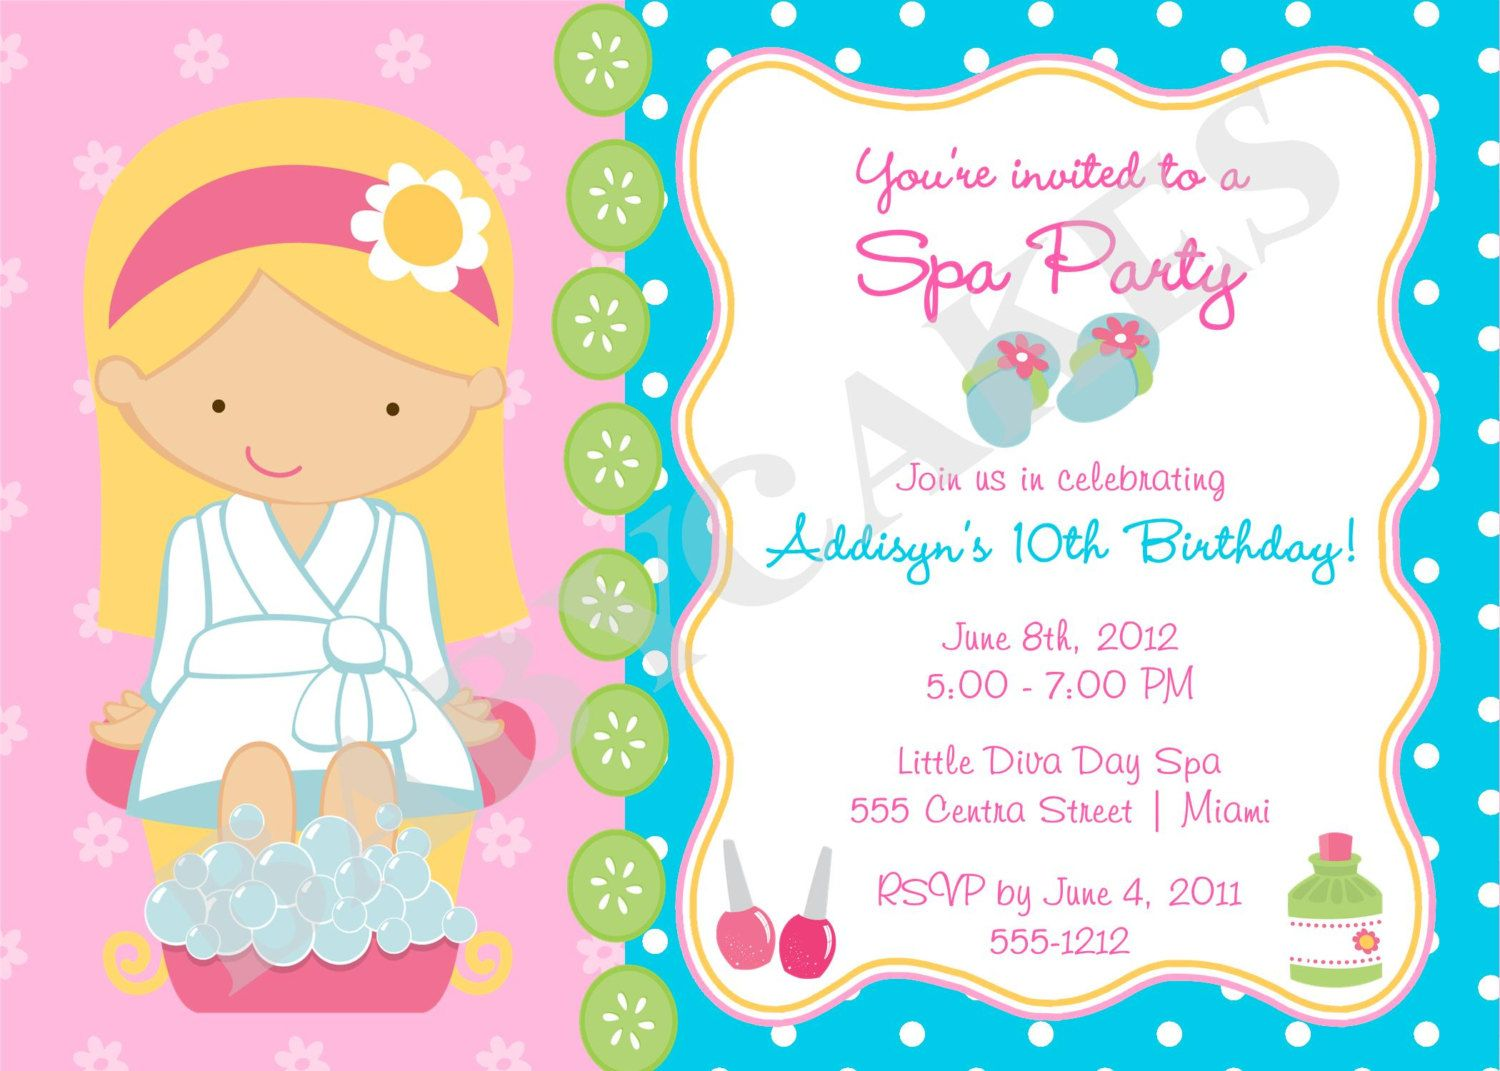 Spa party invitation spa invitation invite spa birthday party spa spa party invitation spa invitation invite spa birthday party spa birthday invitation invite choose your girl stopboris Images